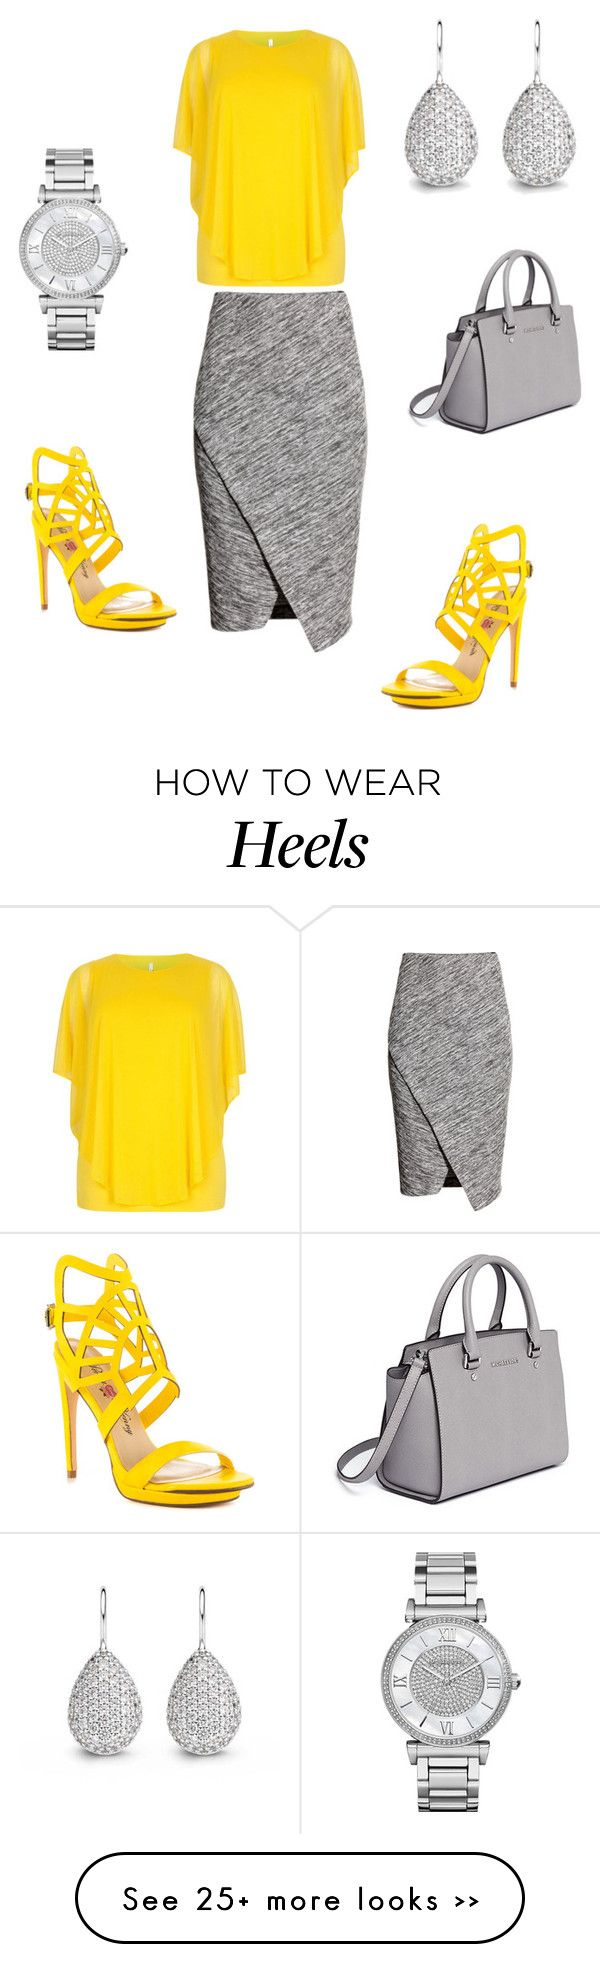 """Untitled #237"" by essiekuda on Polyvore featuring H&M, Michael Kors, Penny Loves Kenny and MICHAEL Michael Kors"